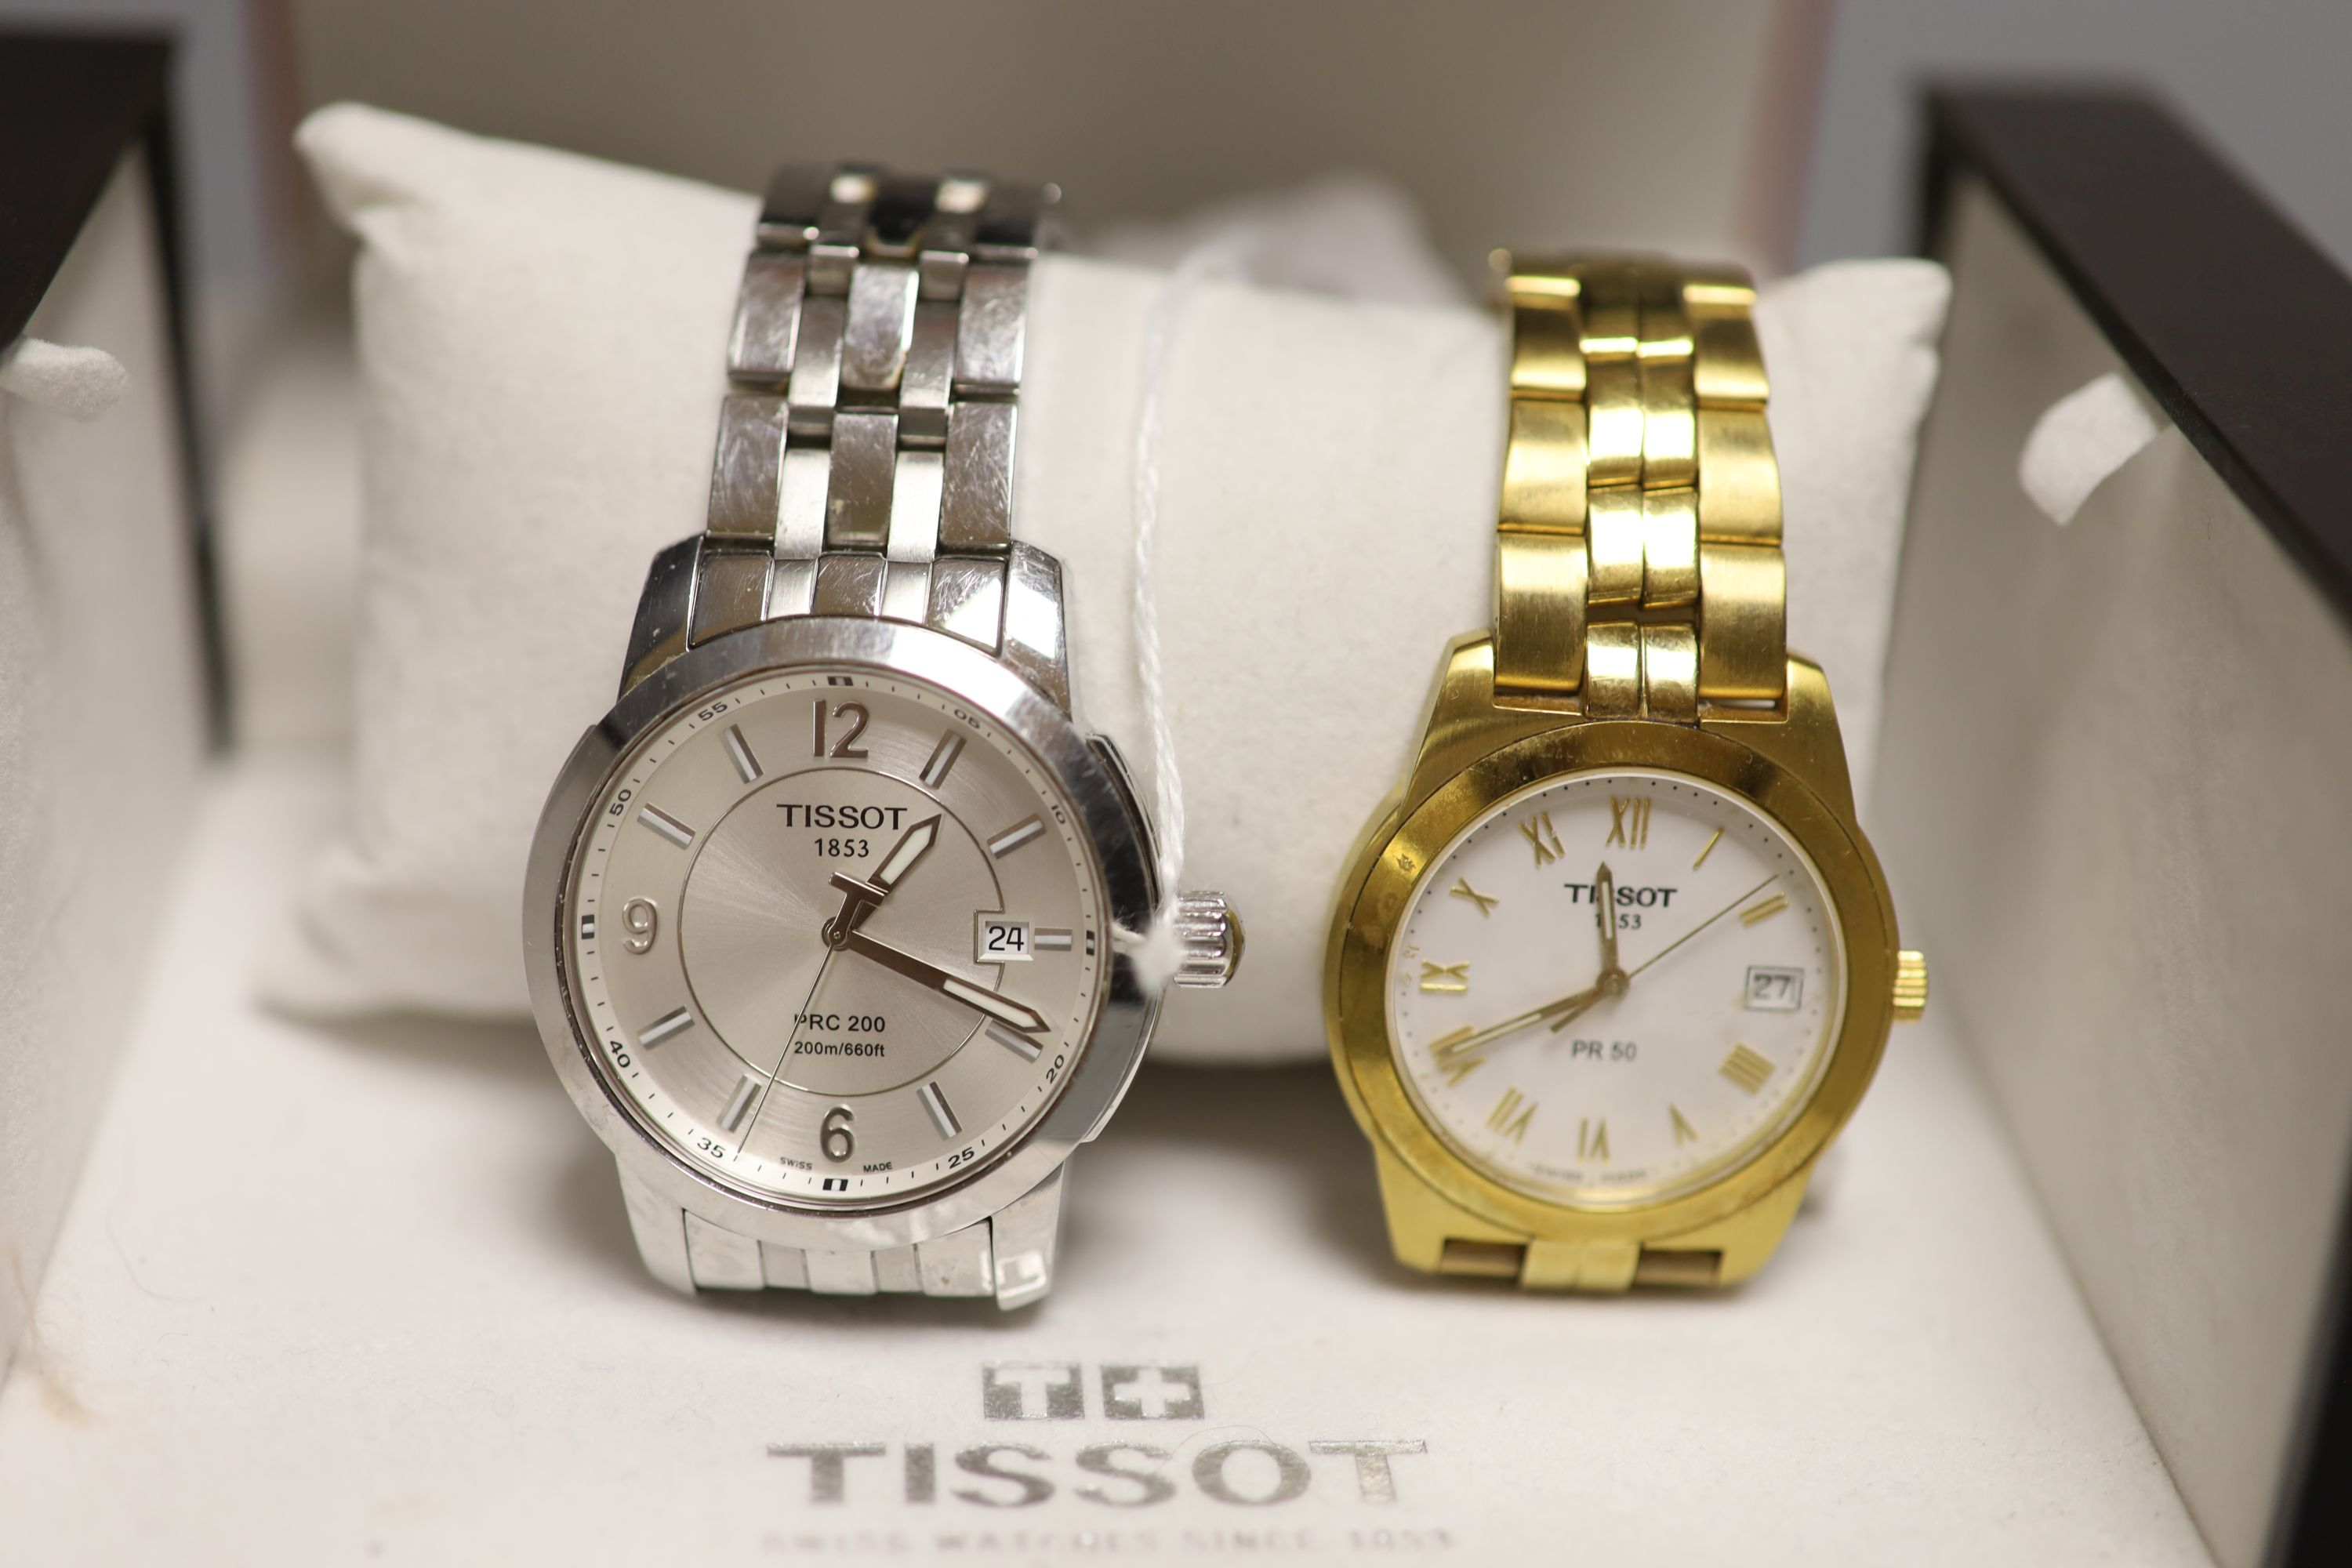 A Tissot 1853 PRC 200 gentleman's stainless steel wristwatch and a Tissot 1853 PR 50 gold-plated - Image 2 of 2